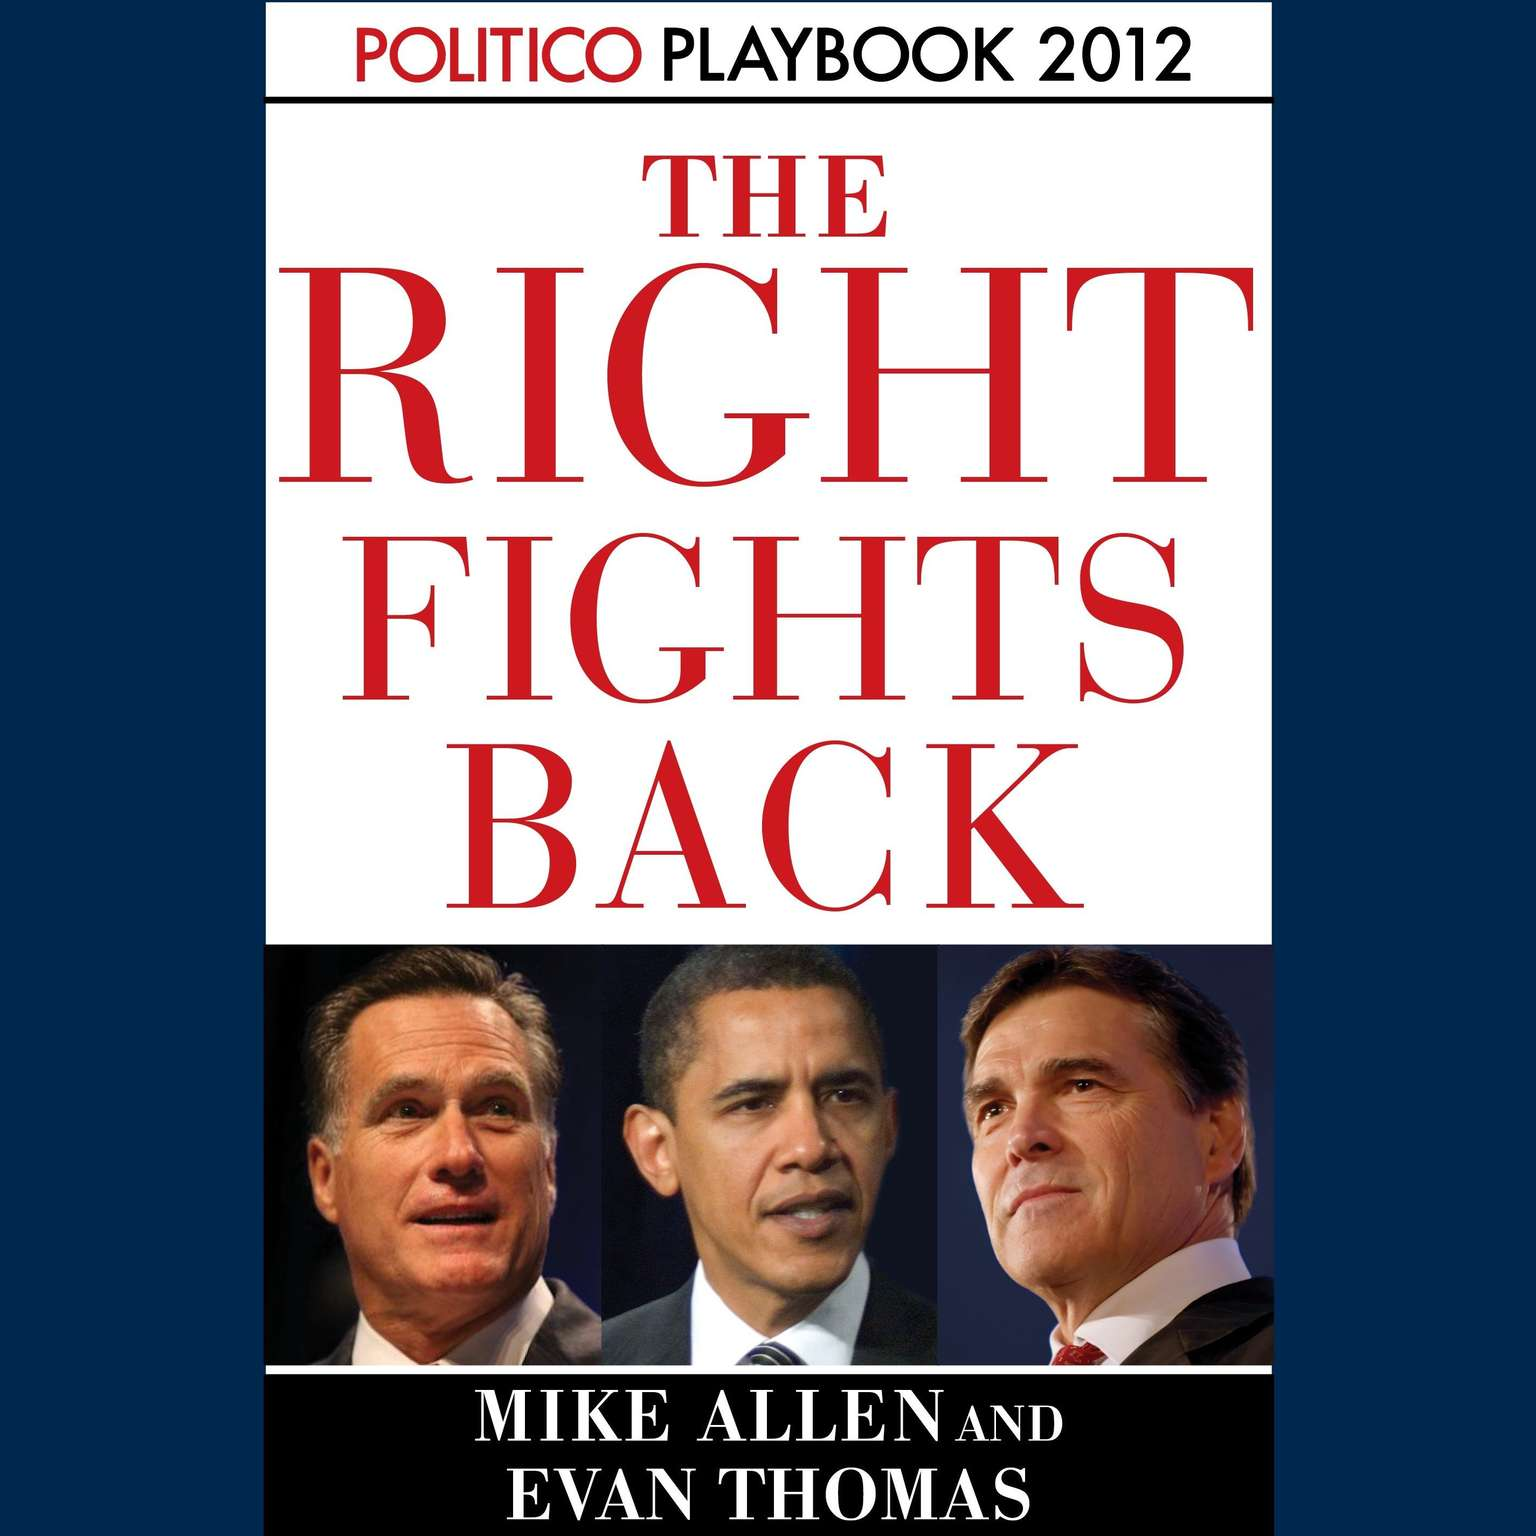 Printable The Right Fights Back: Playbook 2012 (POLITICO Inside Election 2012) Audiobook Cover Art